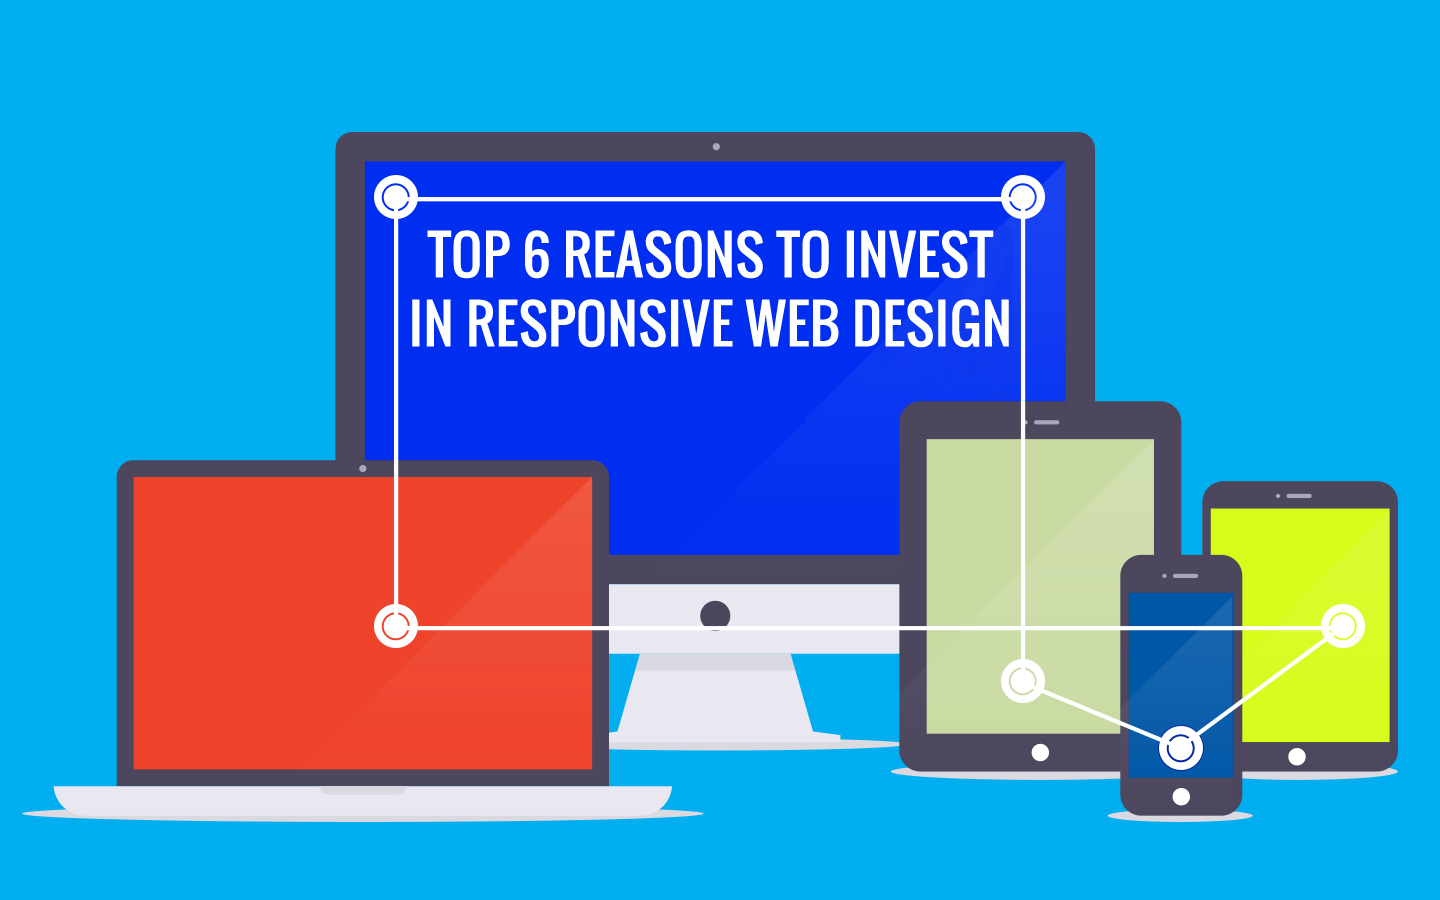 Top 6 Reasons to Invest in Responsive Web Design